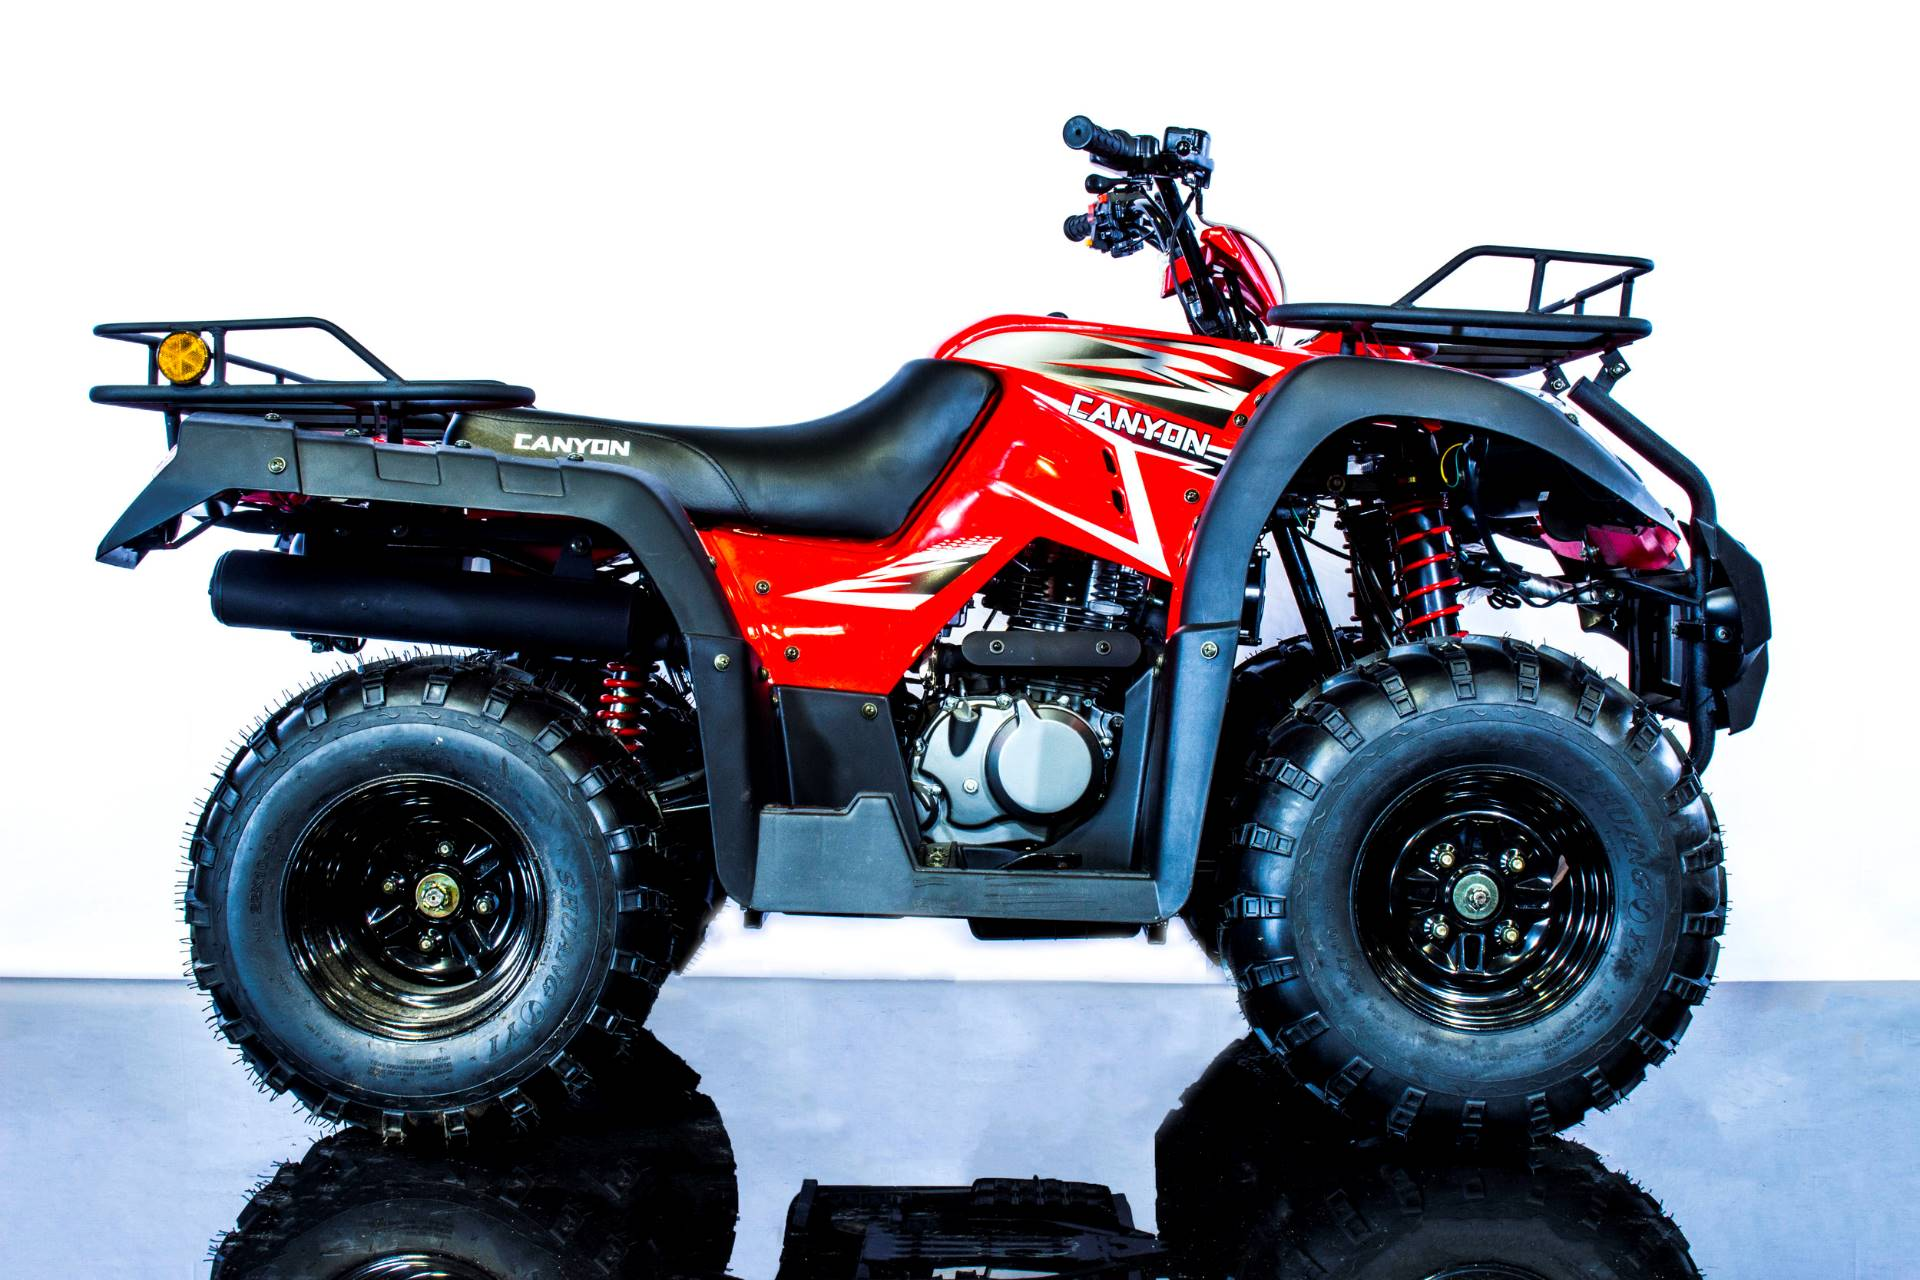 2017 AWL 250cc CANYON - Shaft Drive in Jacksonville, Florida